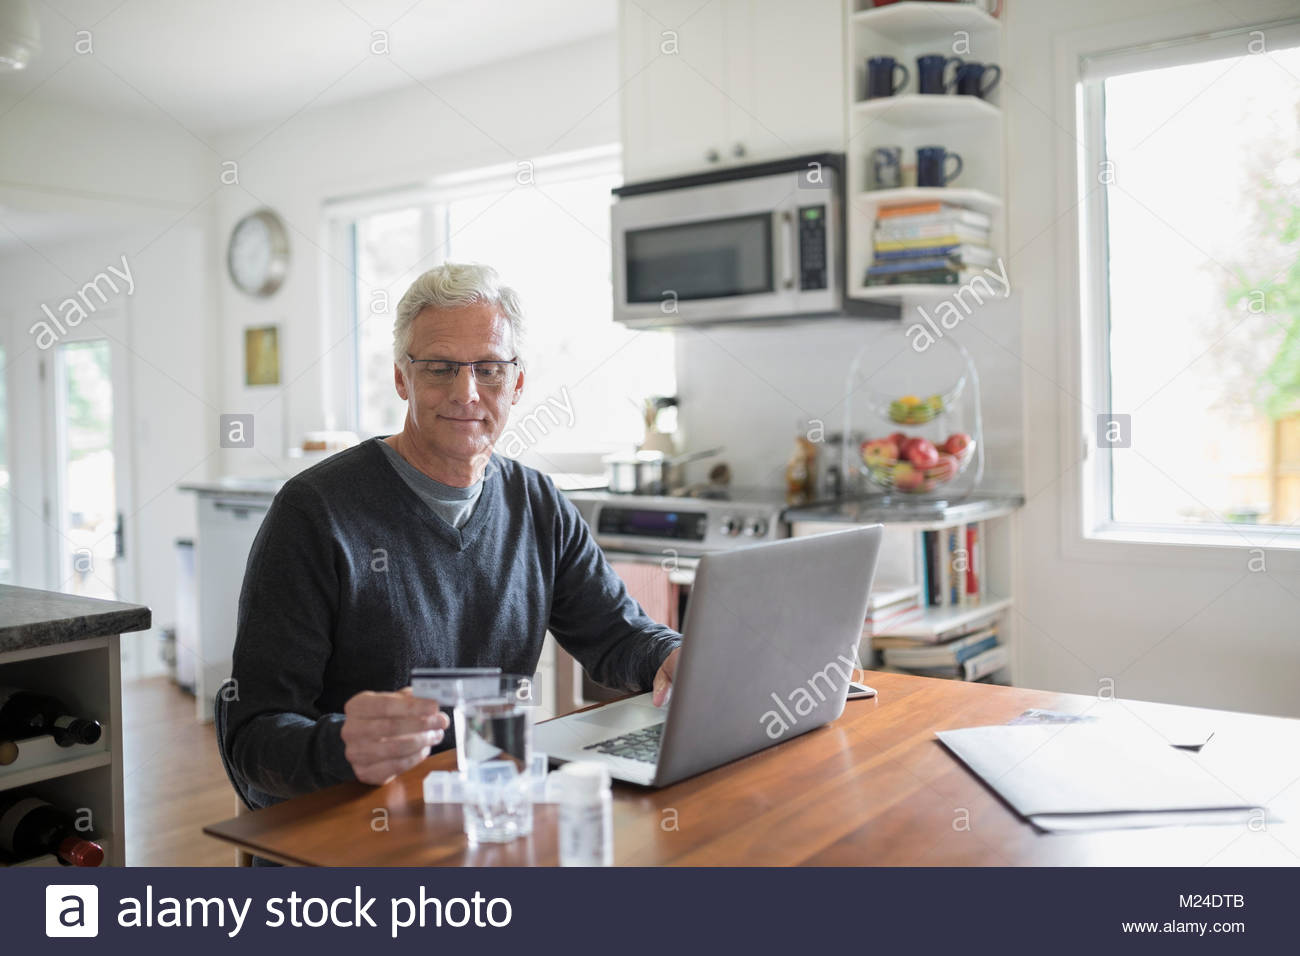 Senior man with credit card reordering prescription medication at laptop in kitchen - Stock Image